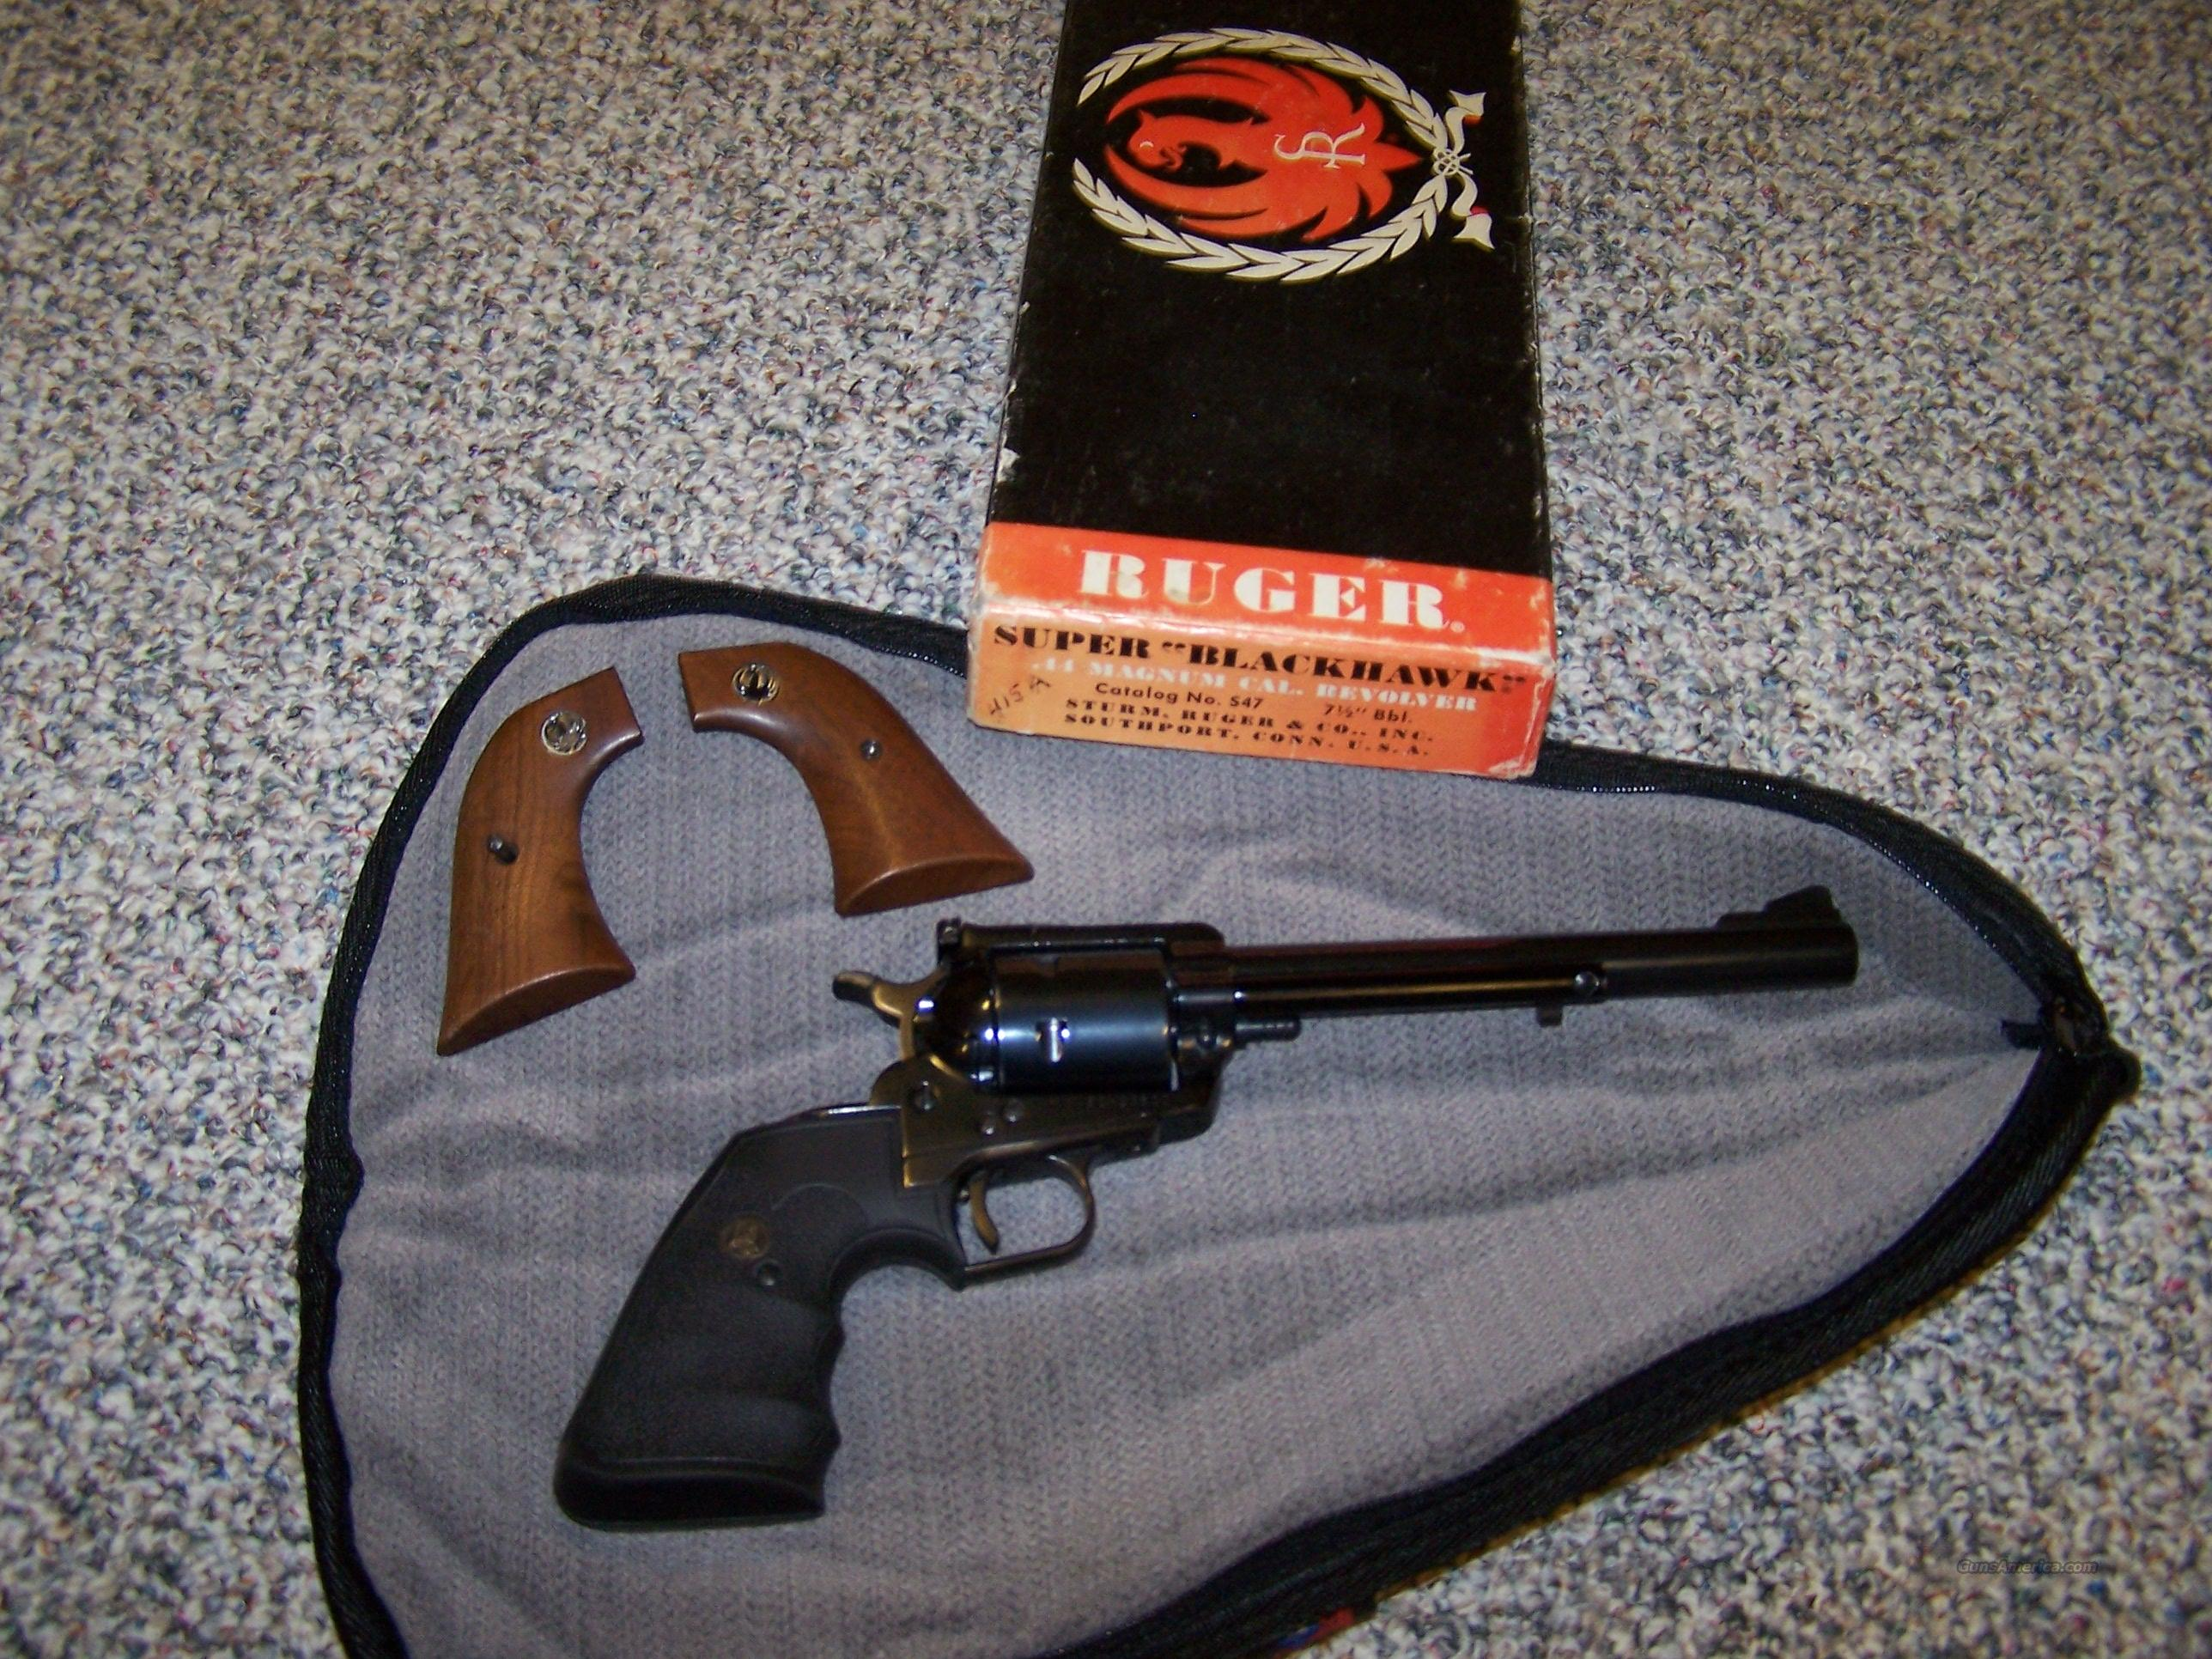 Old Mod. Super Black Hawk 44Mg  Guns > Pistols > Ruger Single Action Revolvers